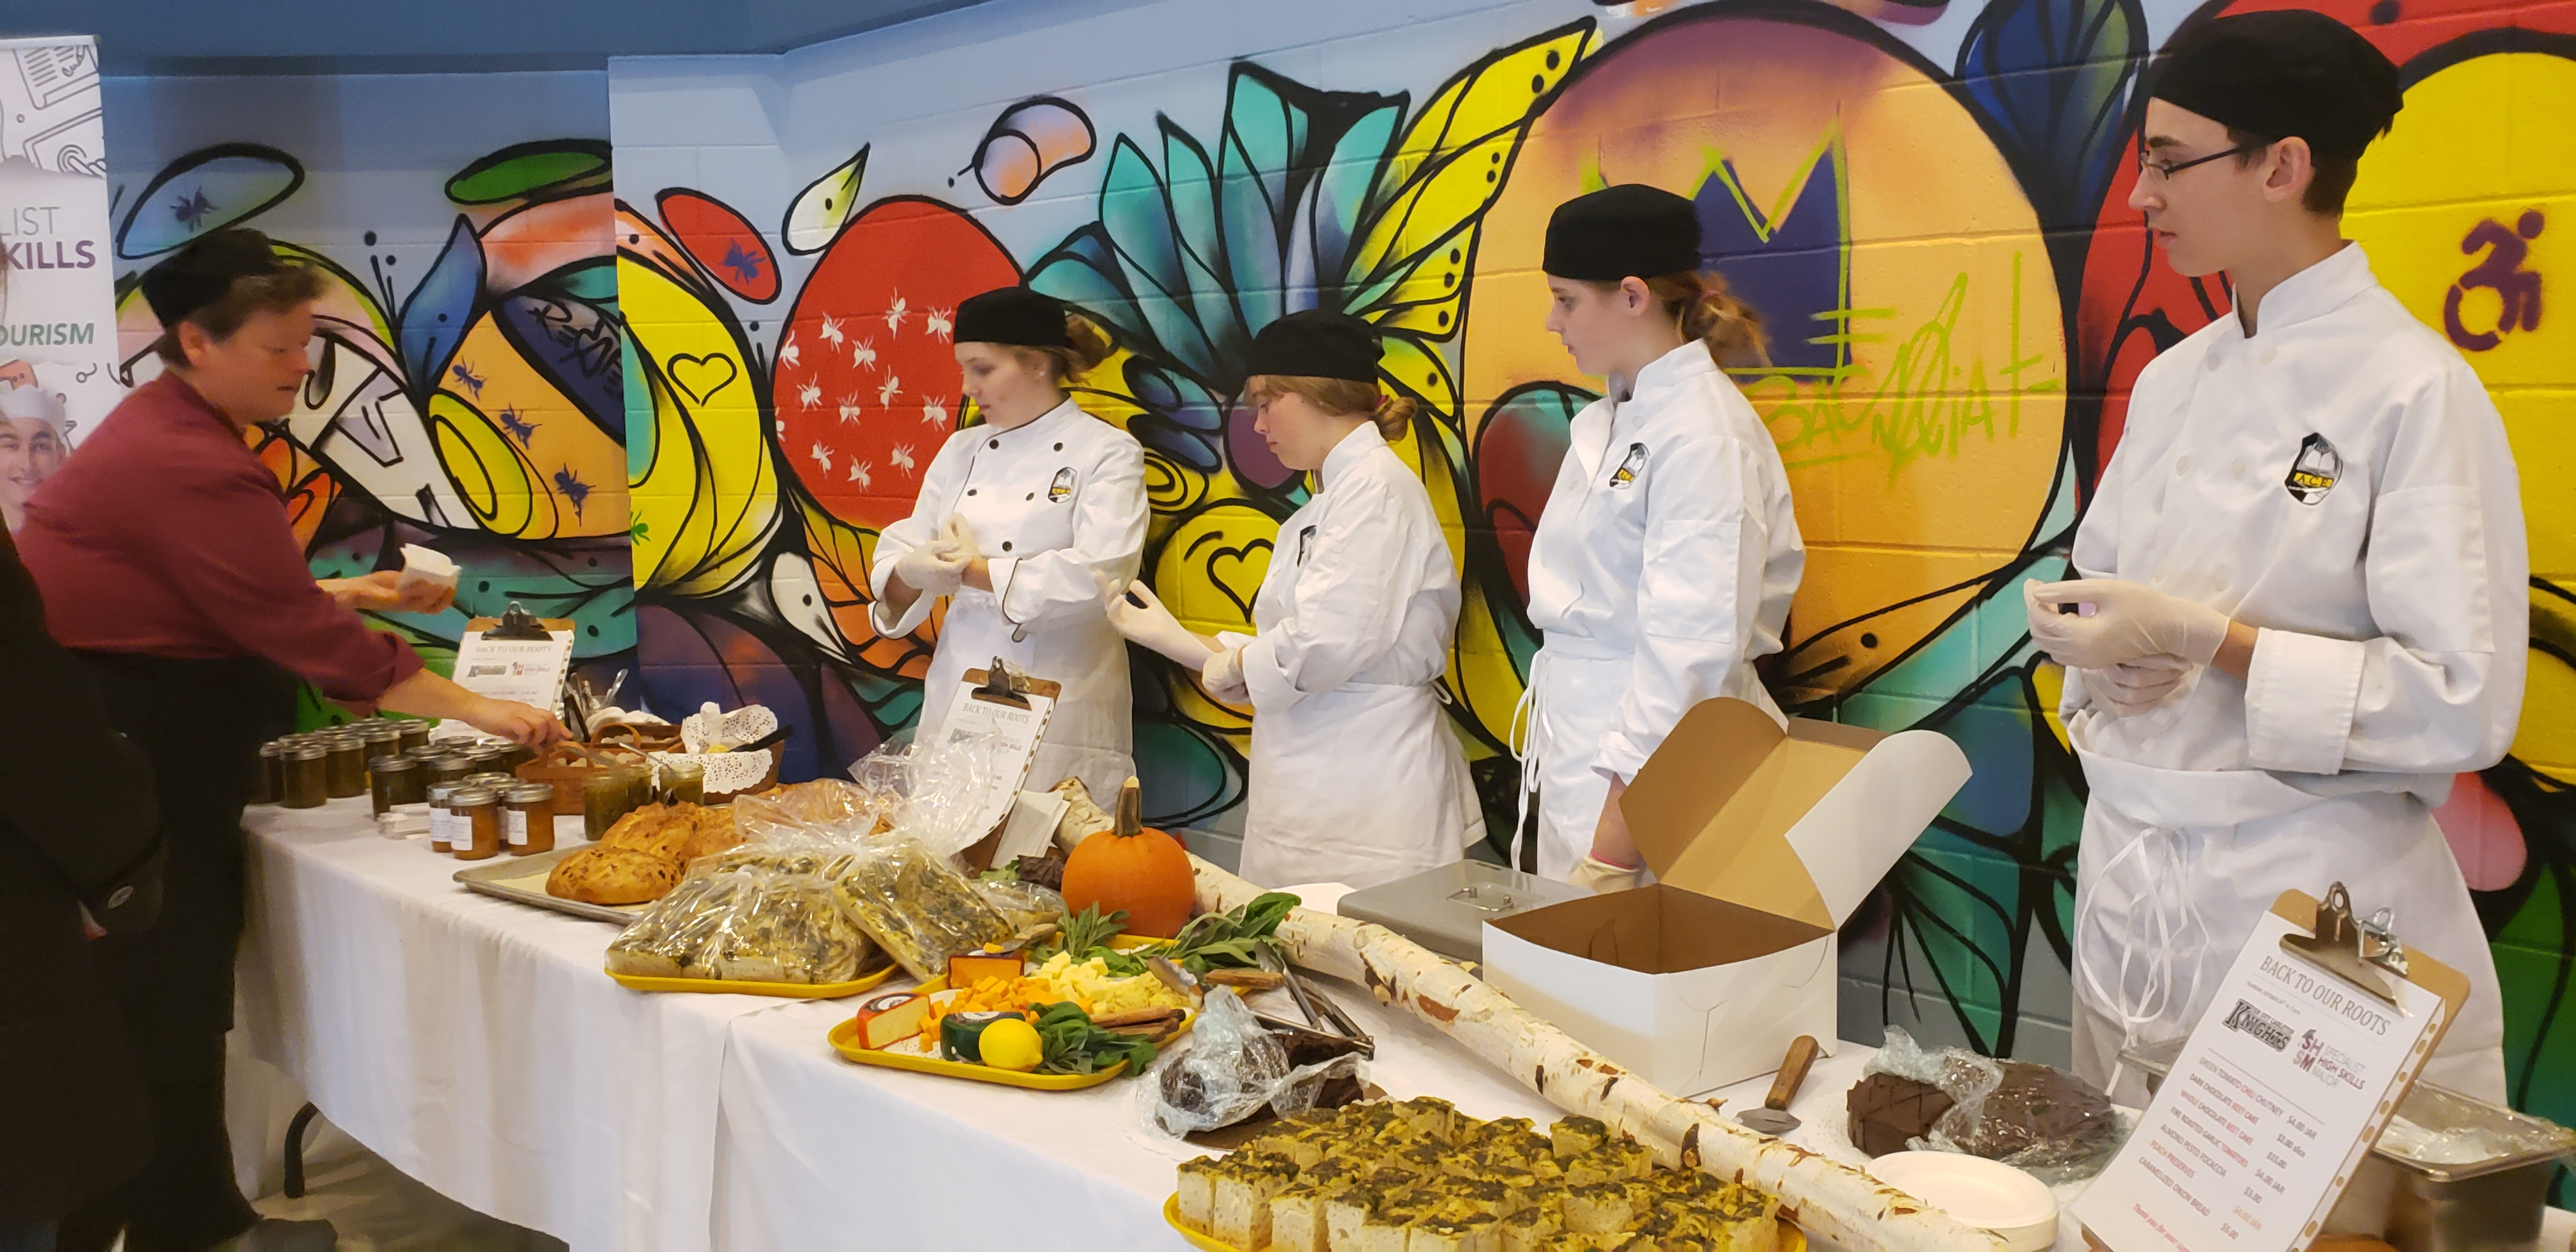 Four students wearing chef uniforms ready to serve food they have prepared.